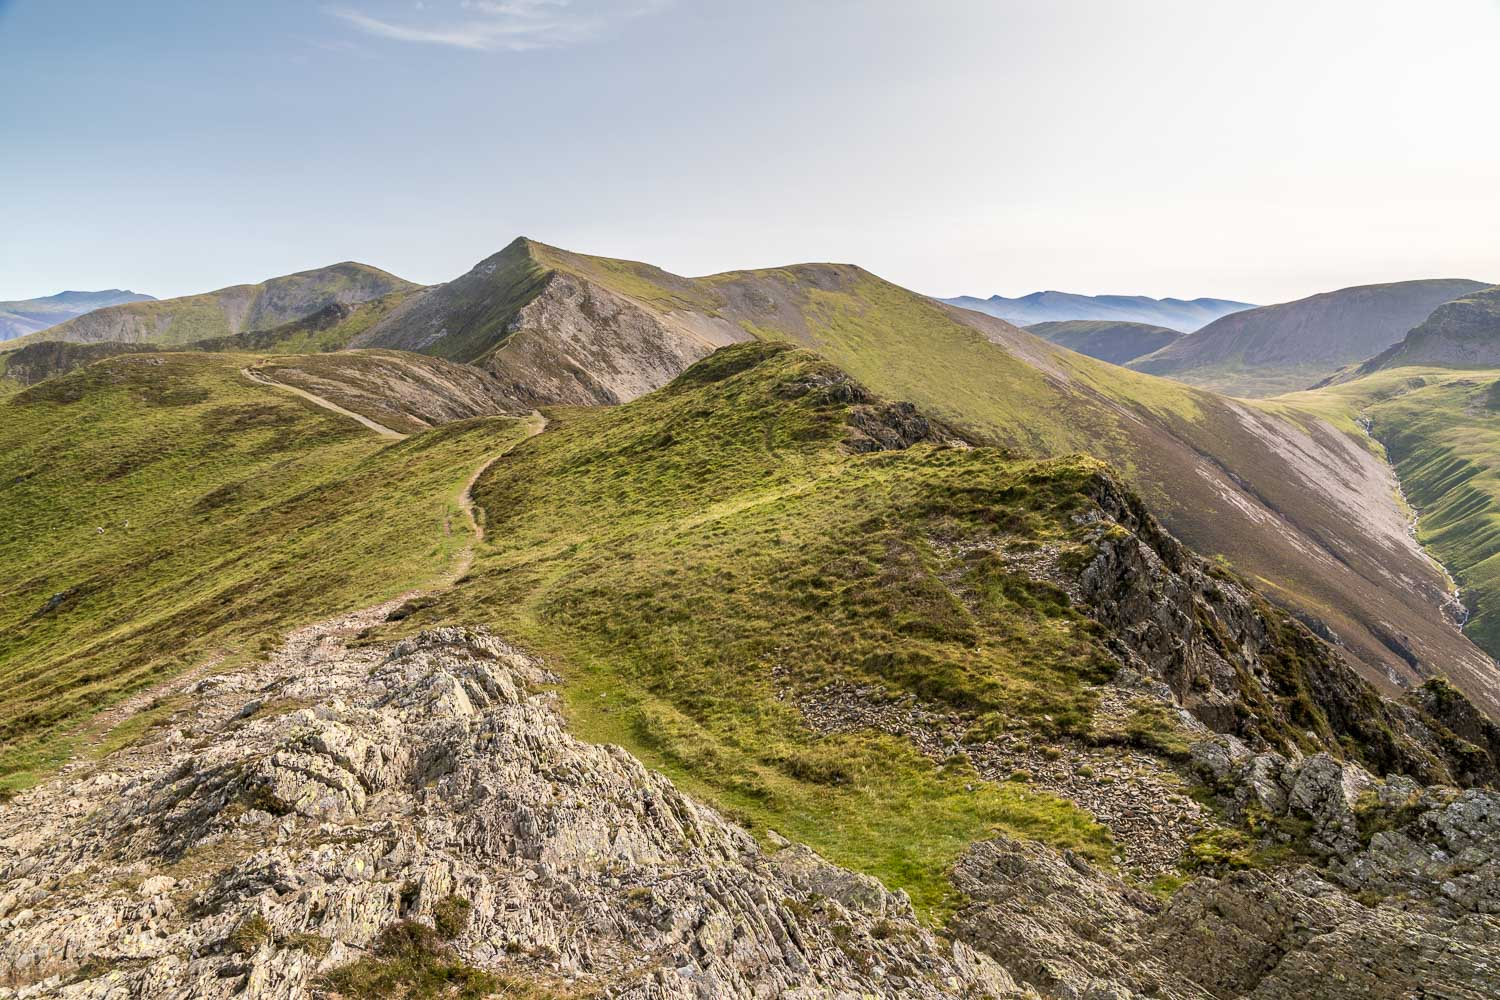 Whiteside ridge, Hopegill Head ridge